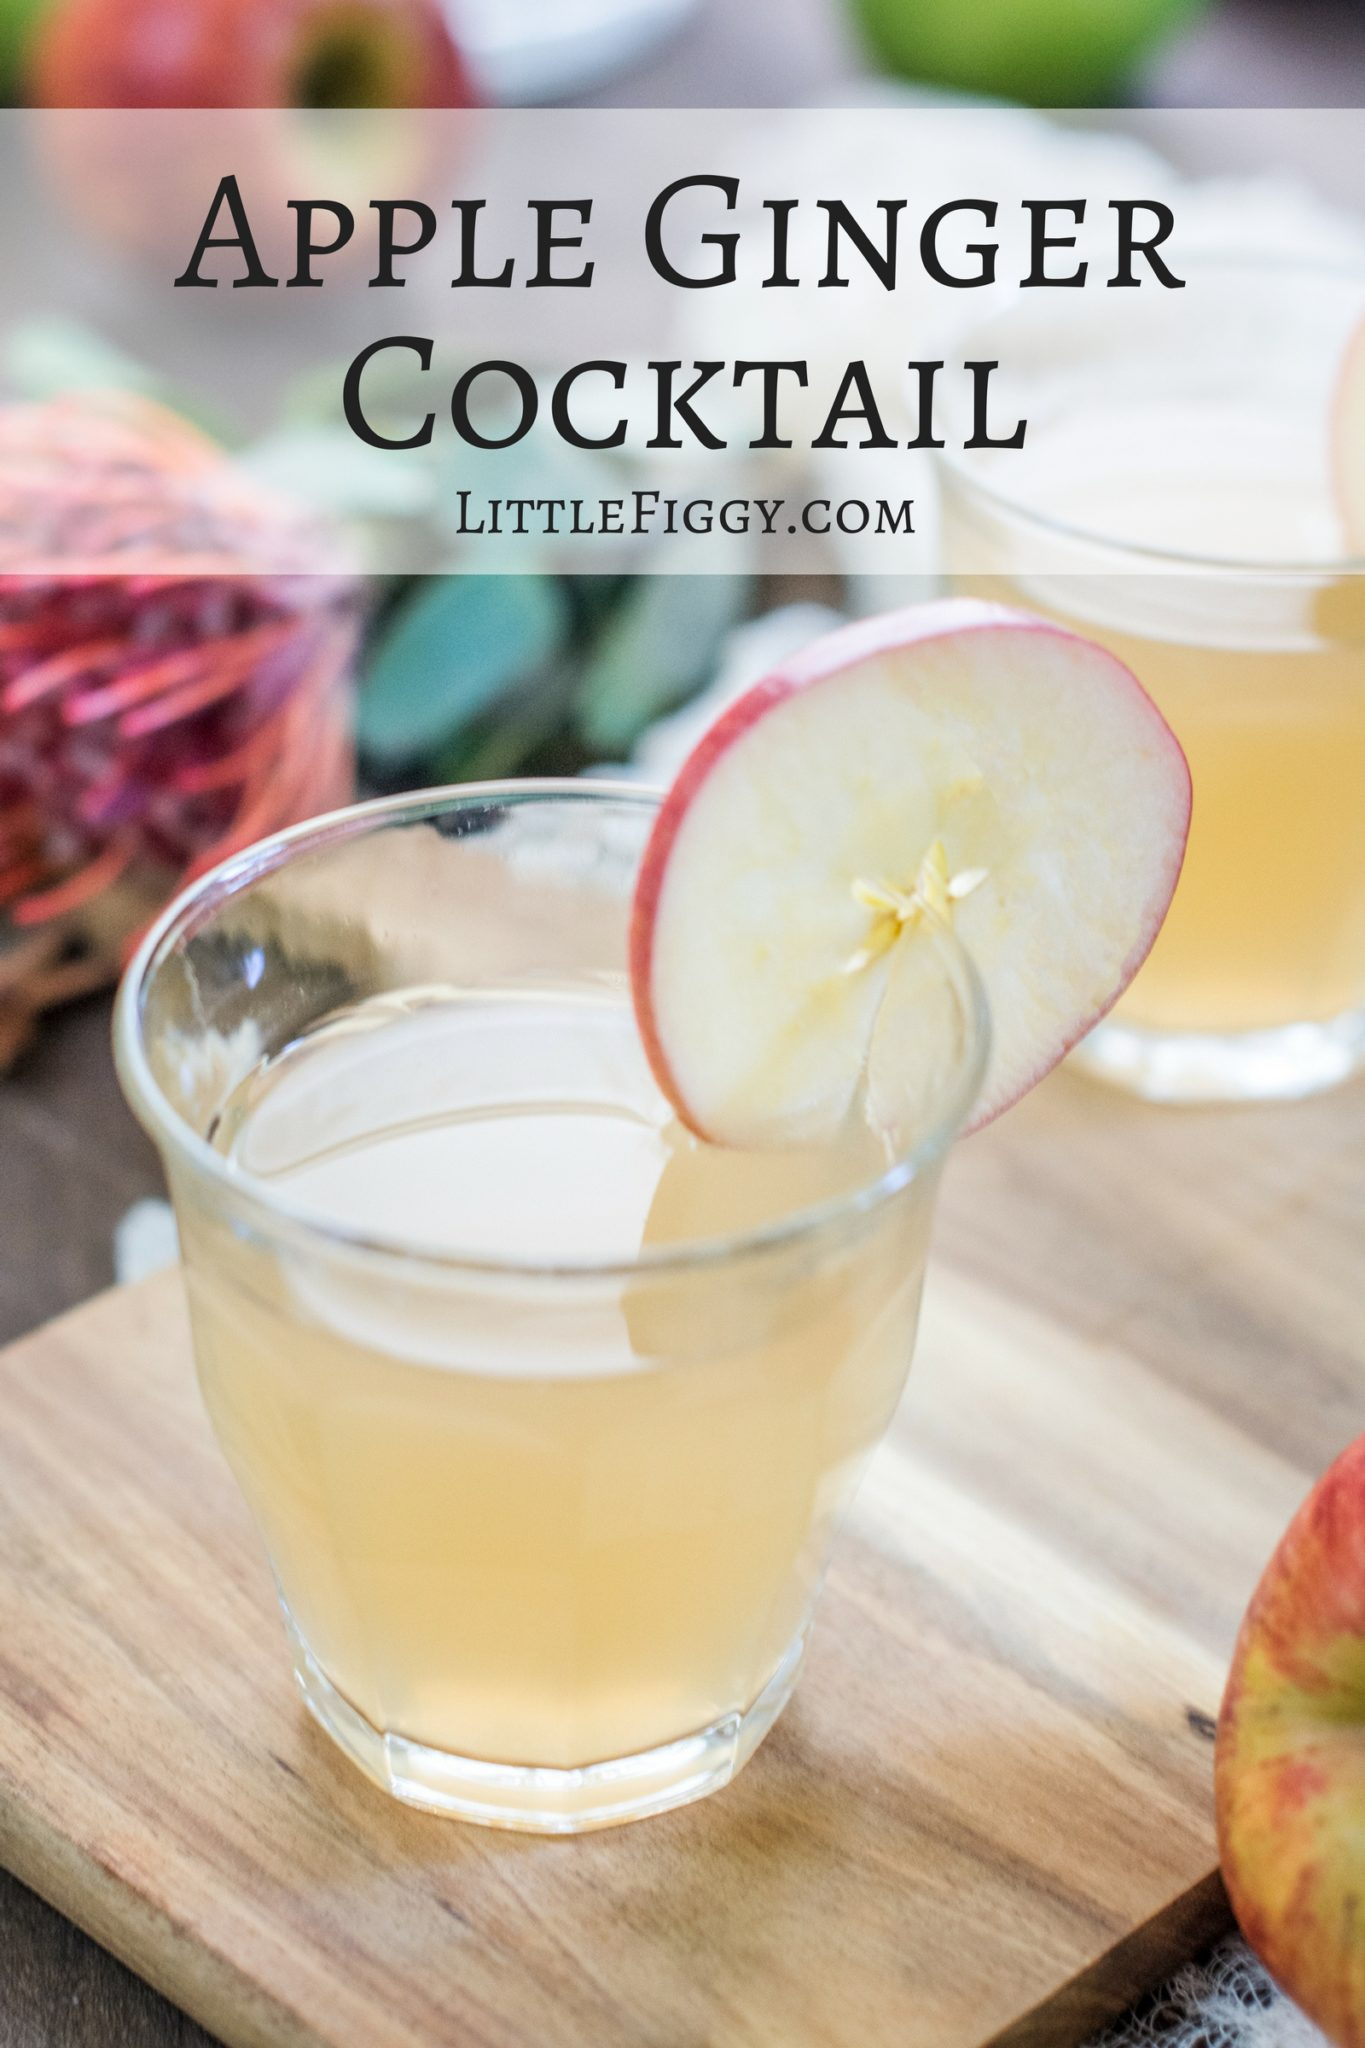 Apple Ginger Cocktail Recipe